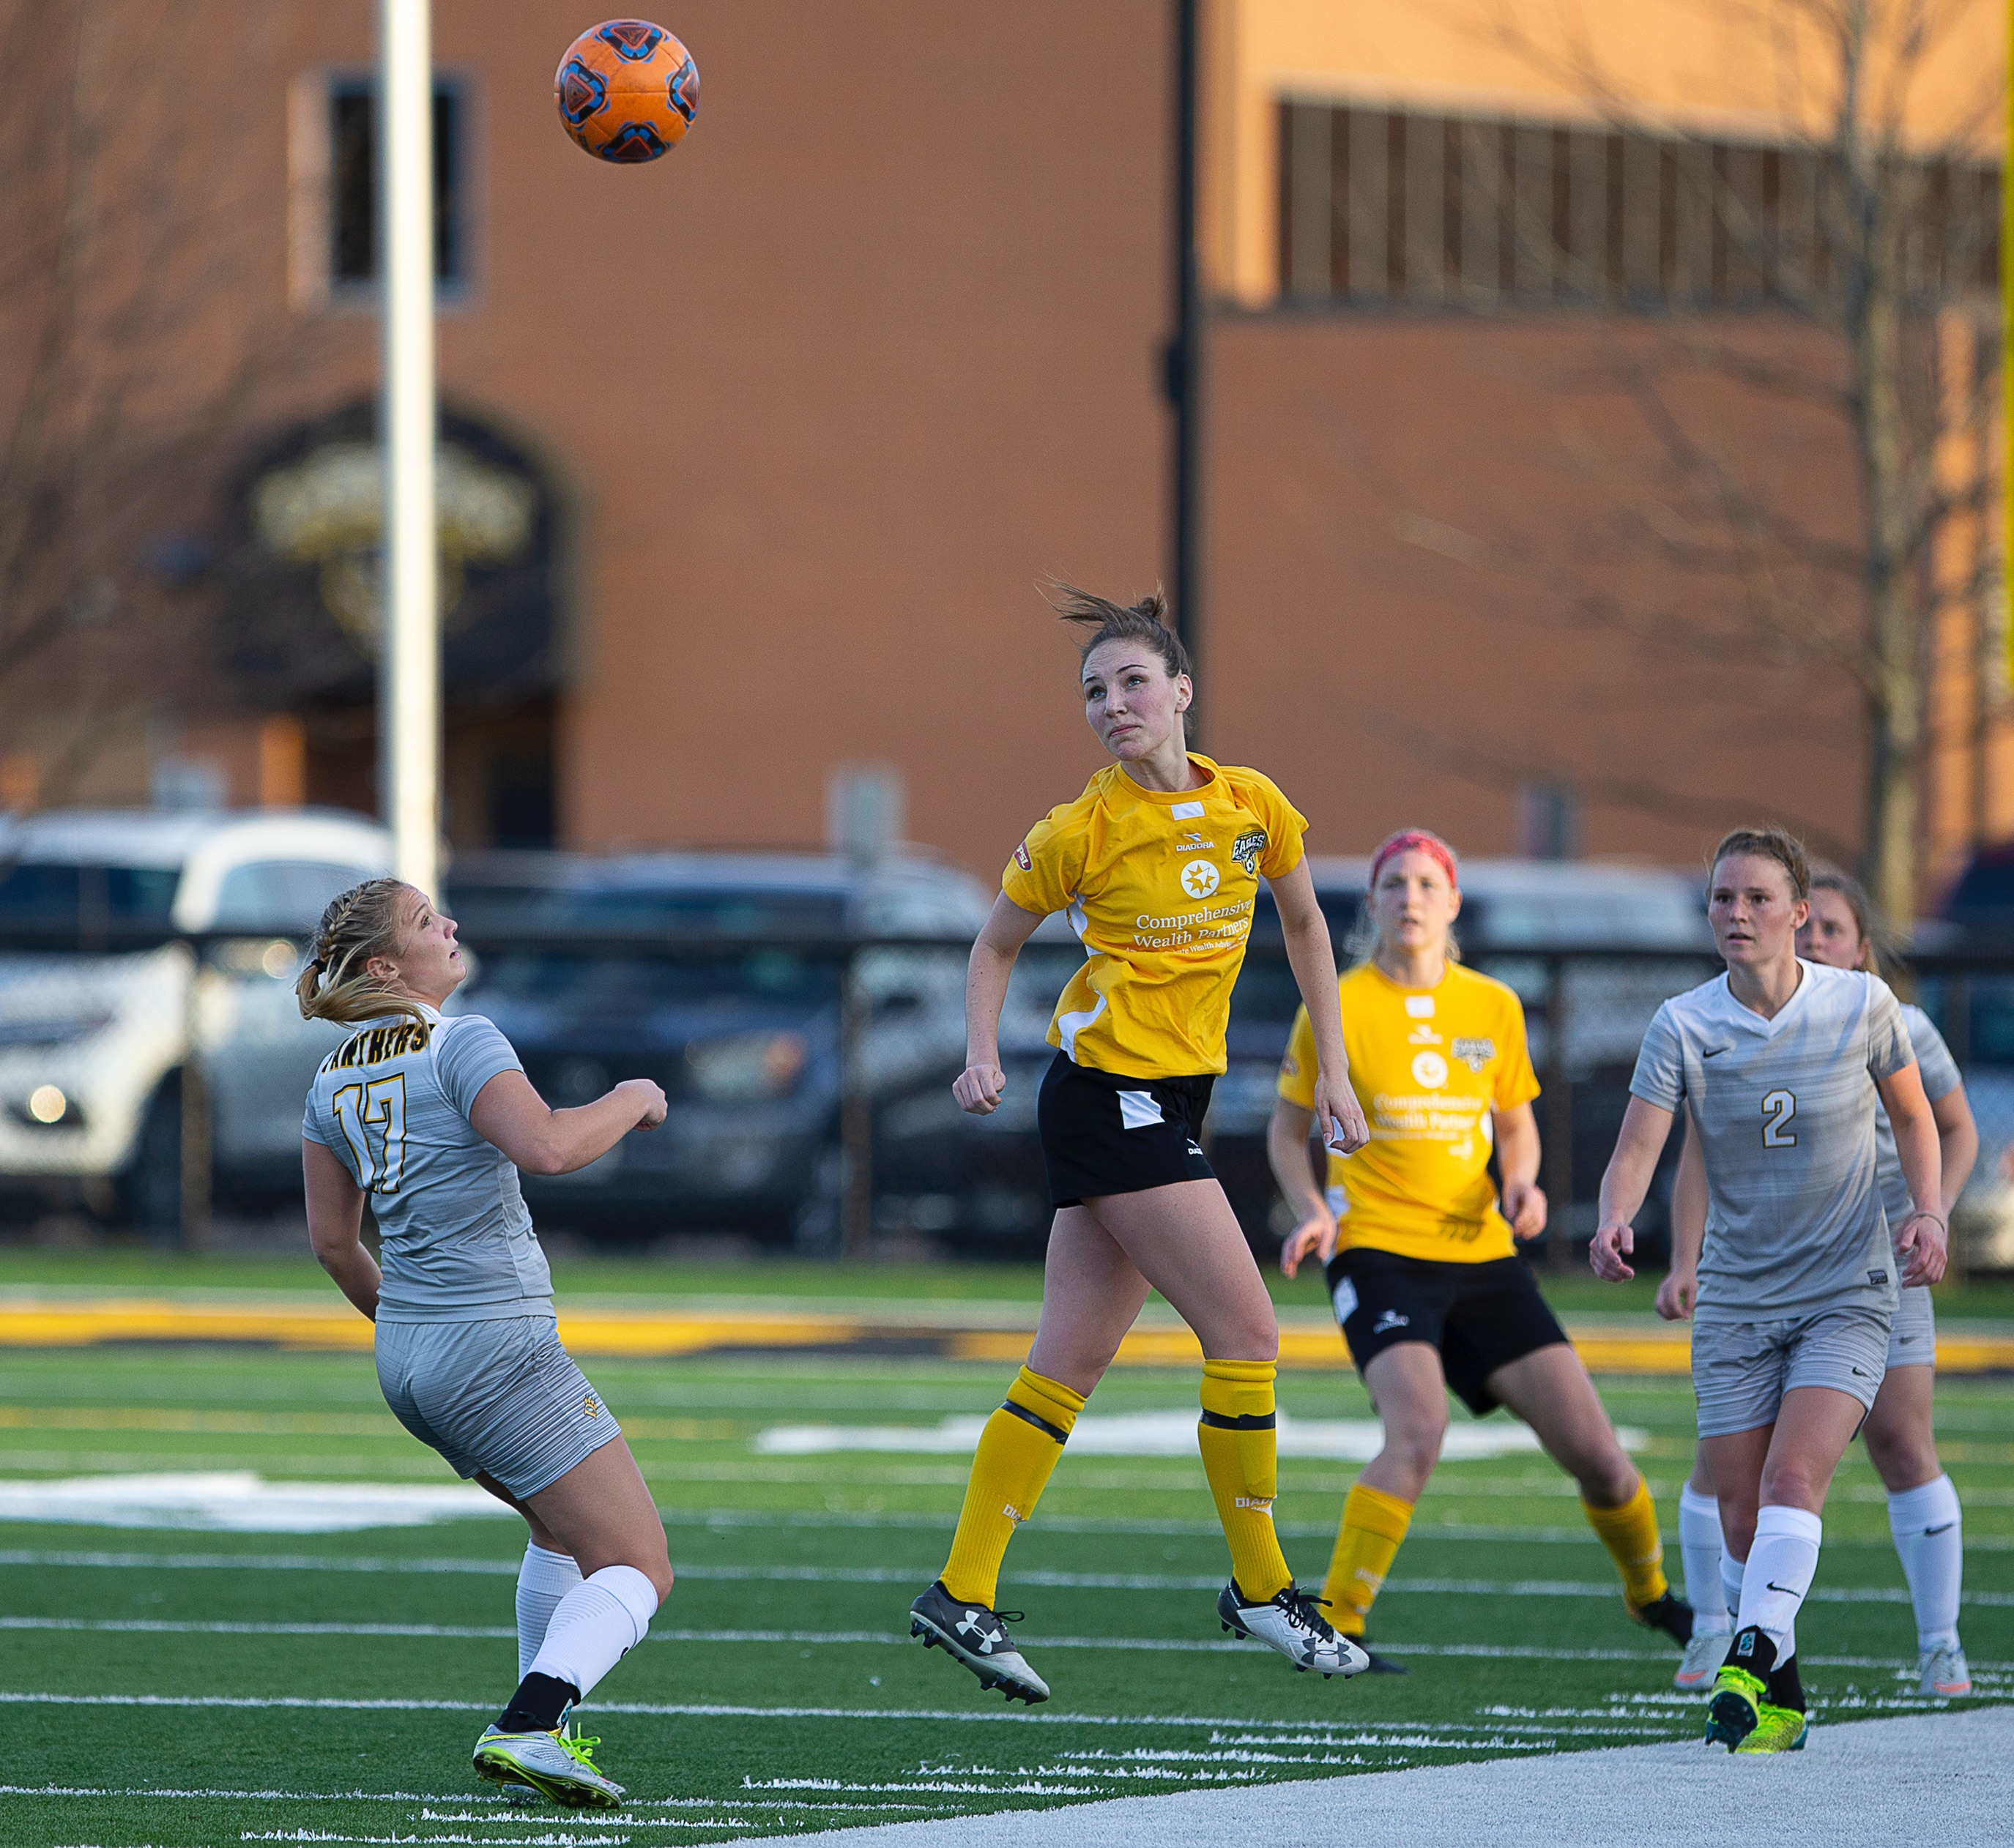 Eagles midfielder Micaela Powers heads the ball along in Columbus's 2-1 win over Ohio Dominican University | Daniel Herlensky